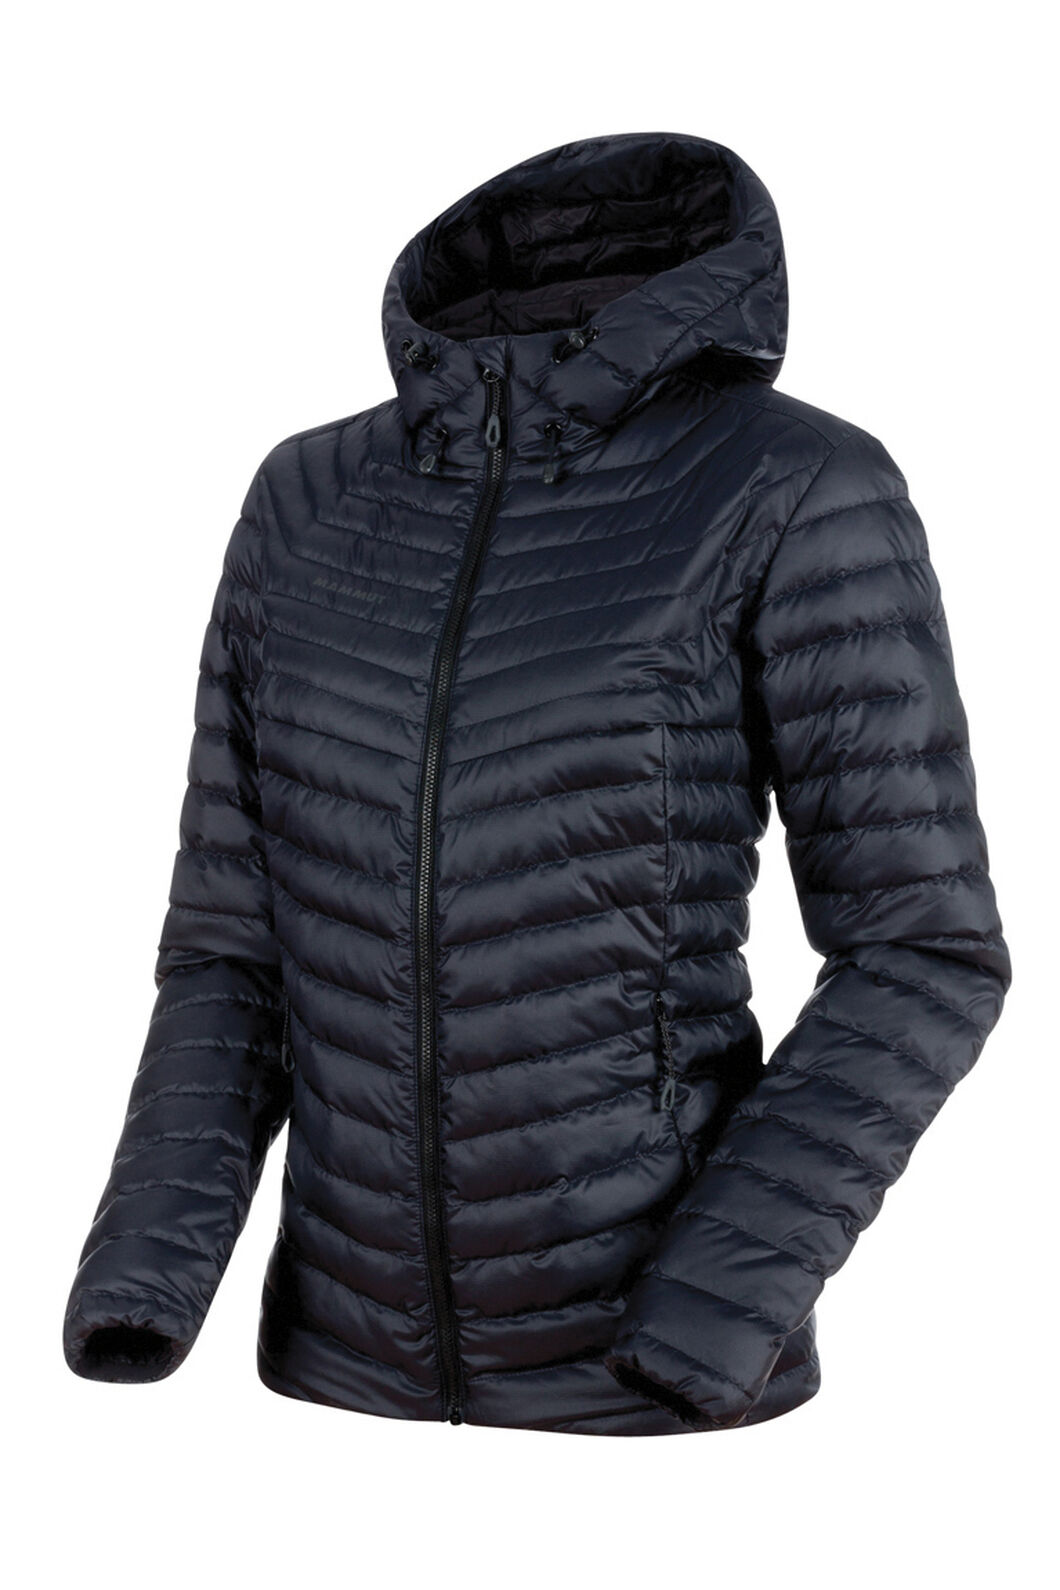 Mammut Convey Insulated Hooded Jacket - Women's, Black/Phantom, hi-res